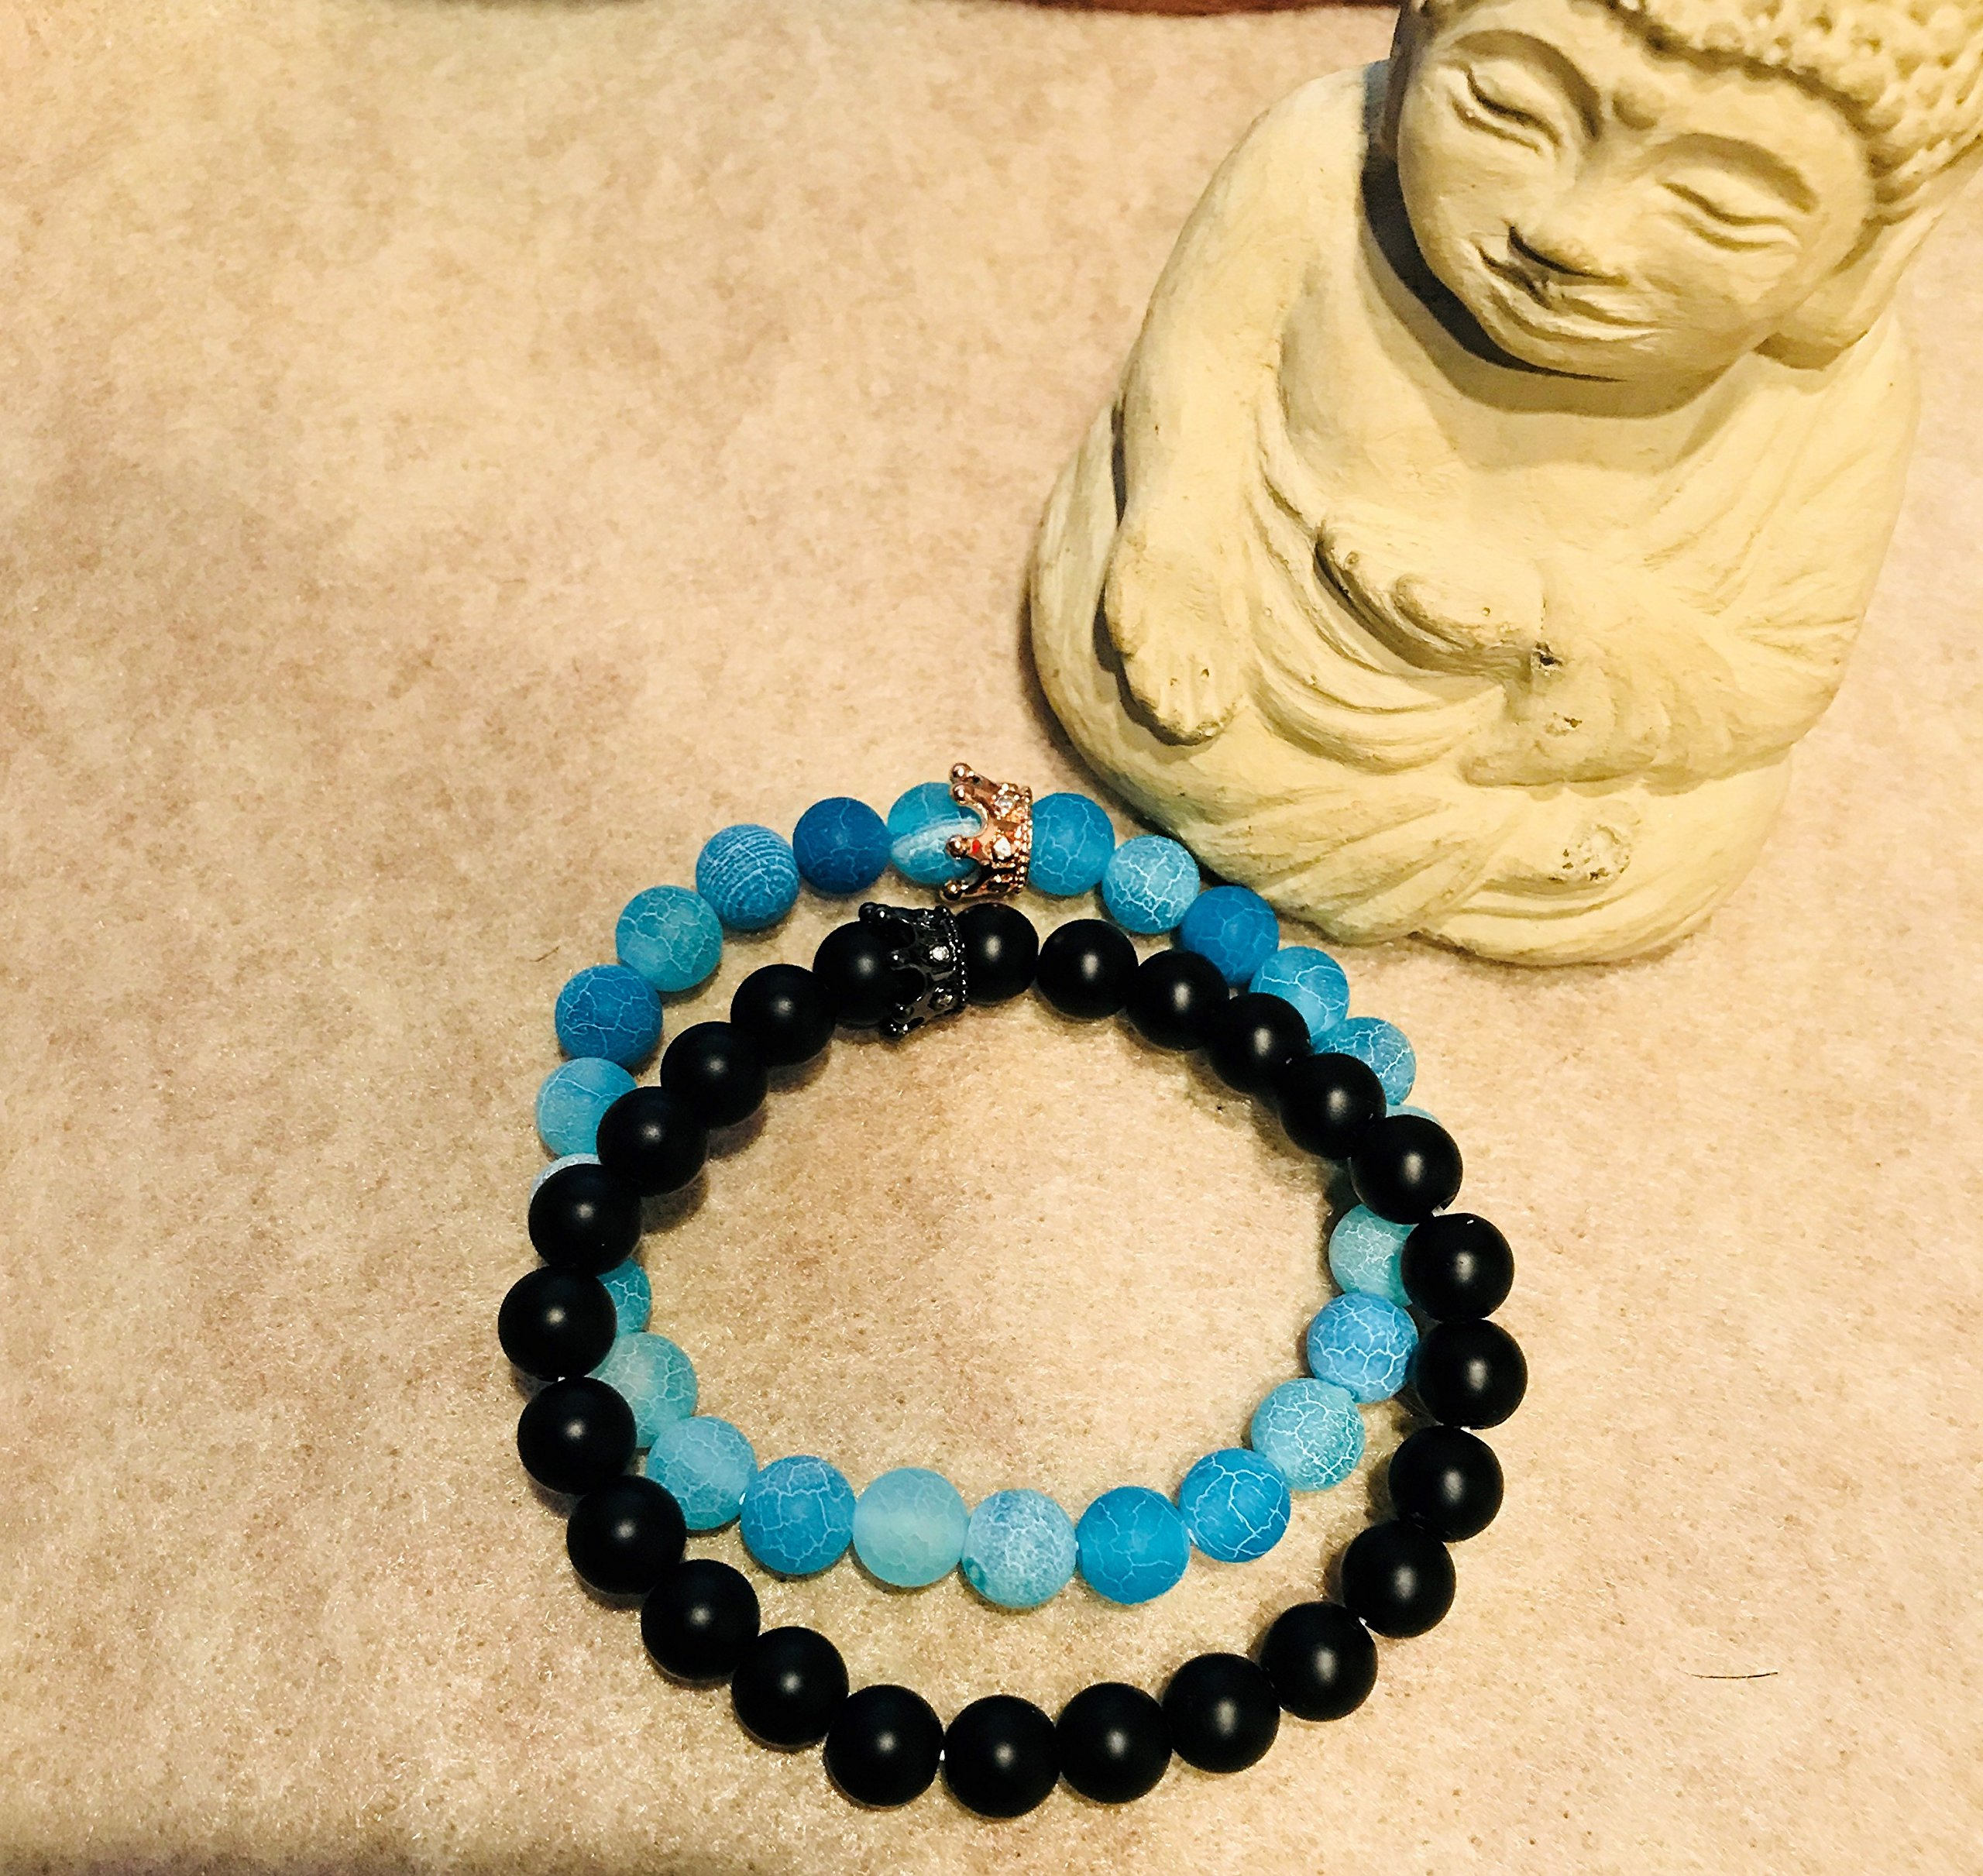 ISAACSONG.DESIGN Unisex Prayer Healing Round Natural Lava Turquoise Stone 8mm Beads Stretch Bracelet with Charms (Black Matte Agate & Blue Agate) by ISAACSONG.DESIGN (Image #5)